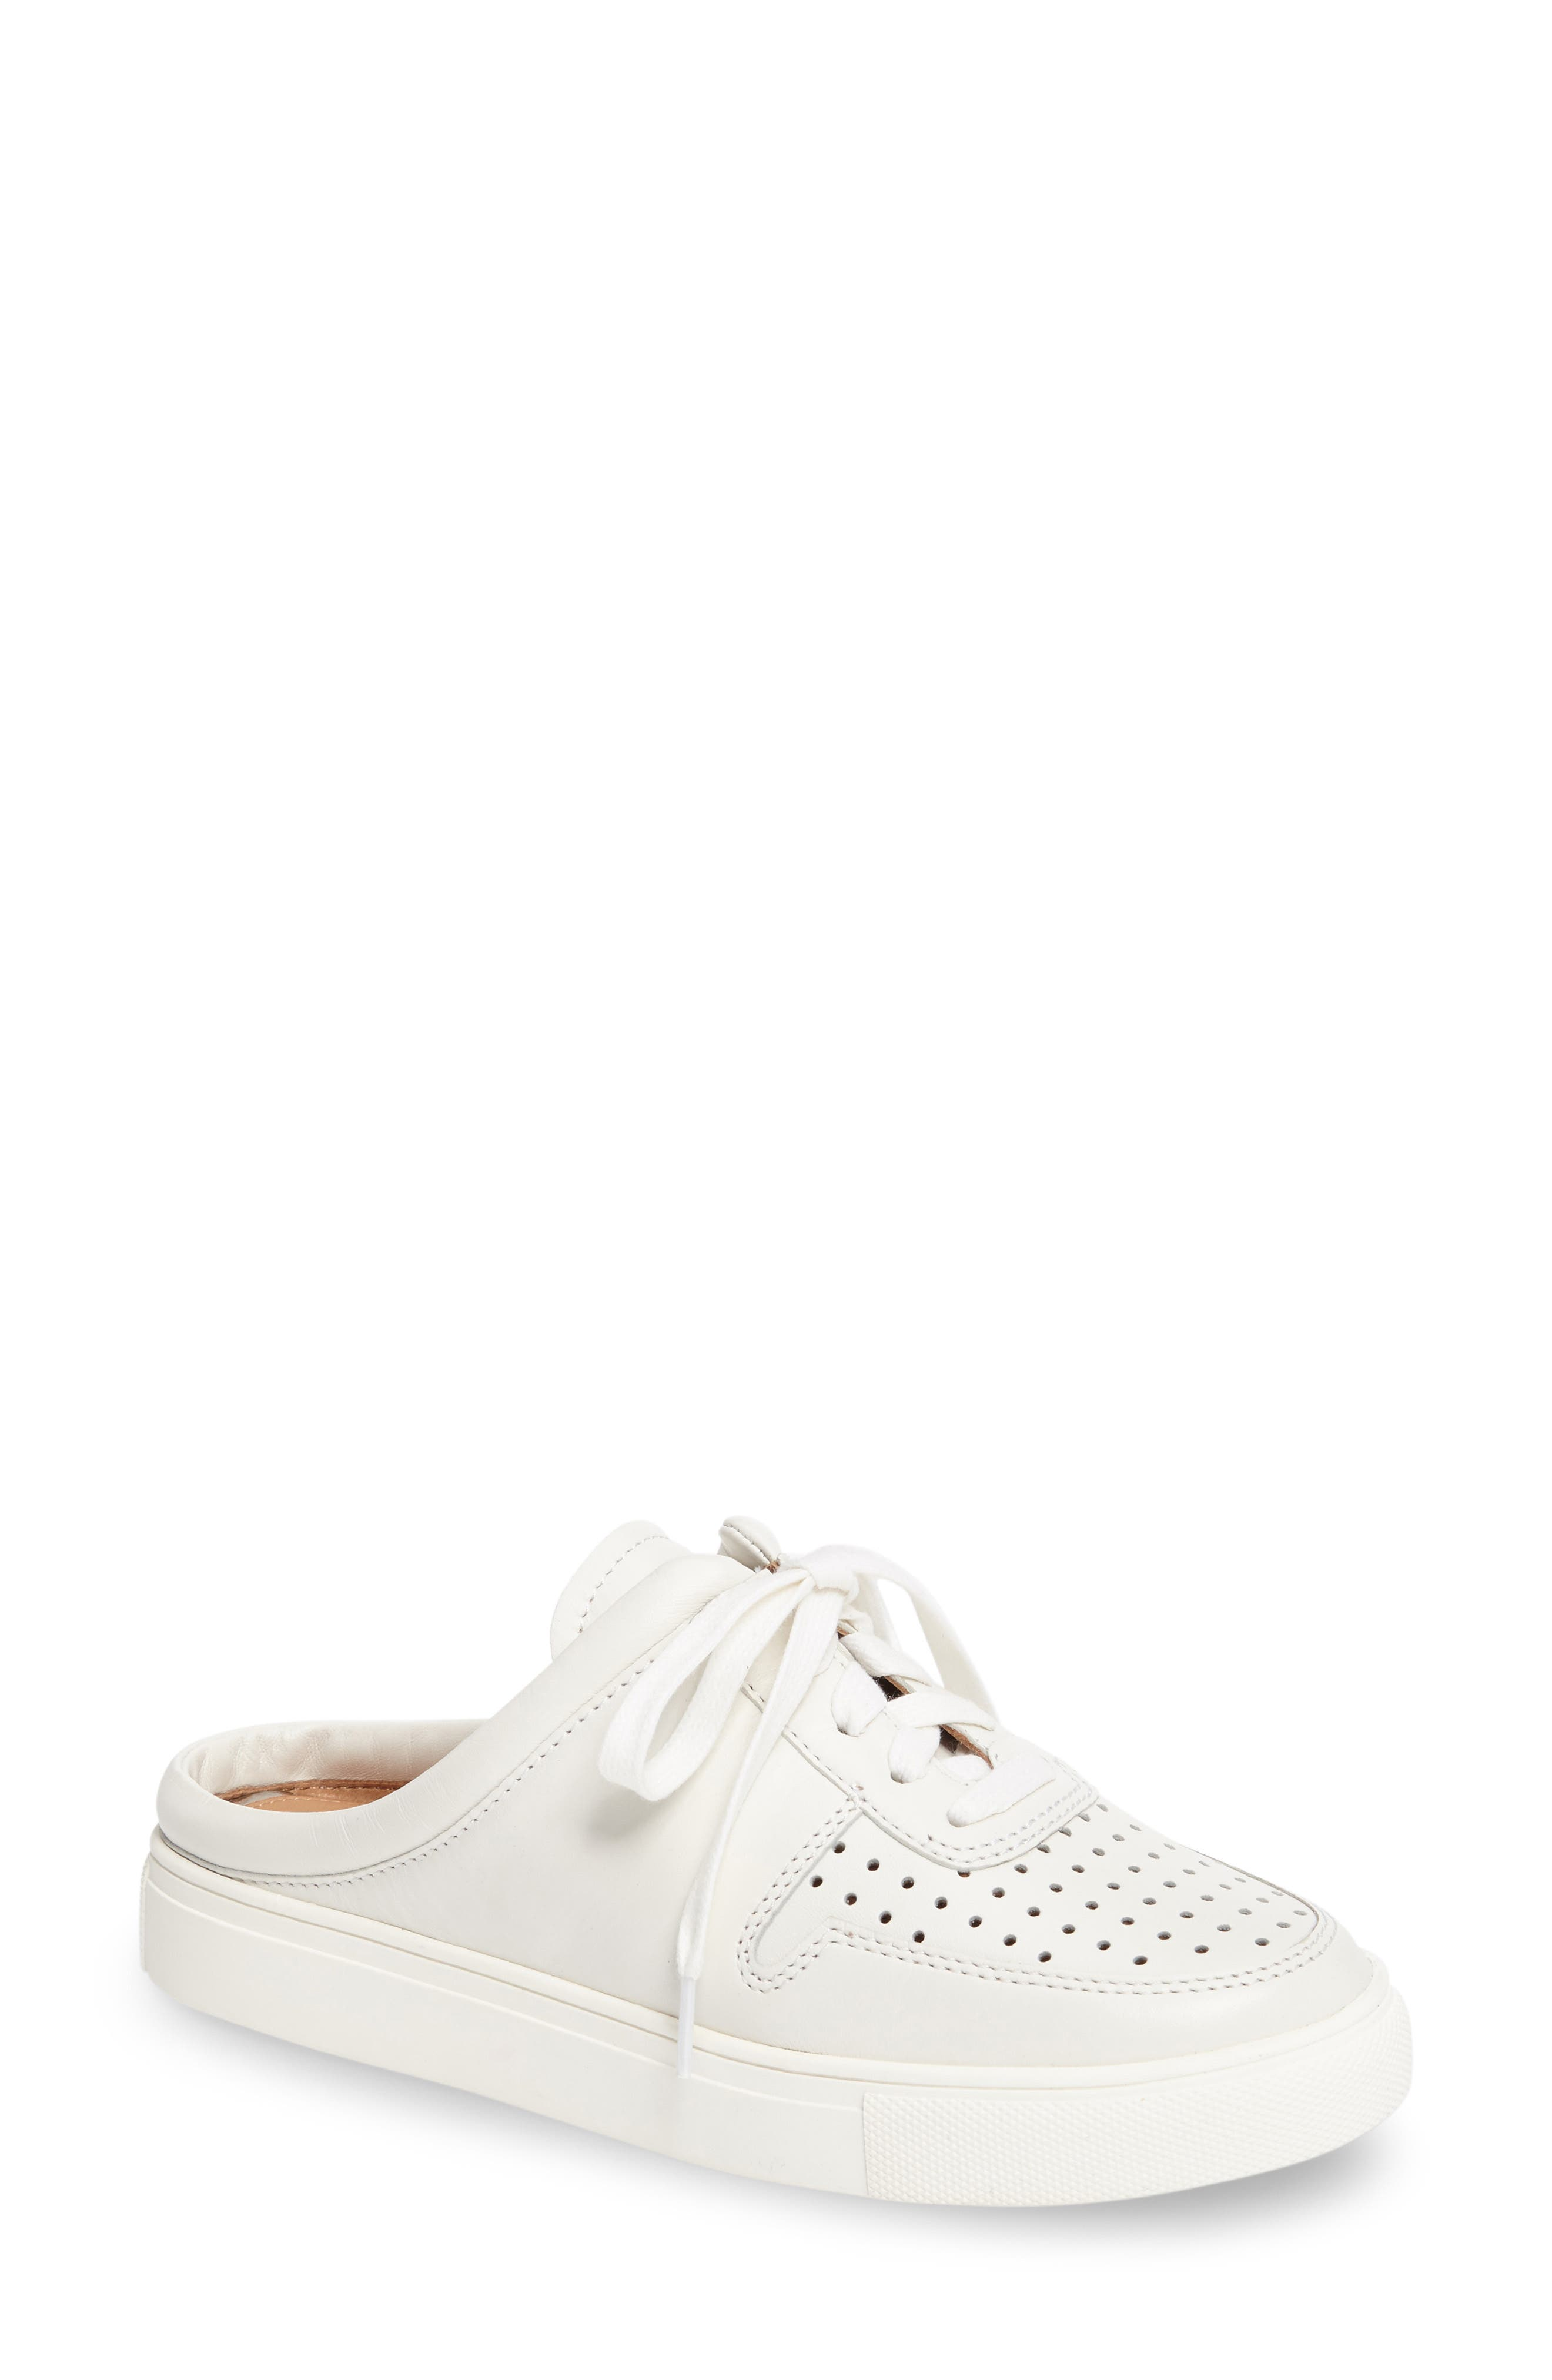 Linea Paolo Kacy Perforated Slide Sneaker (Women)